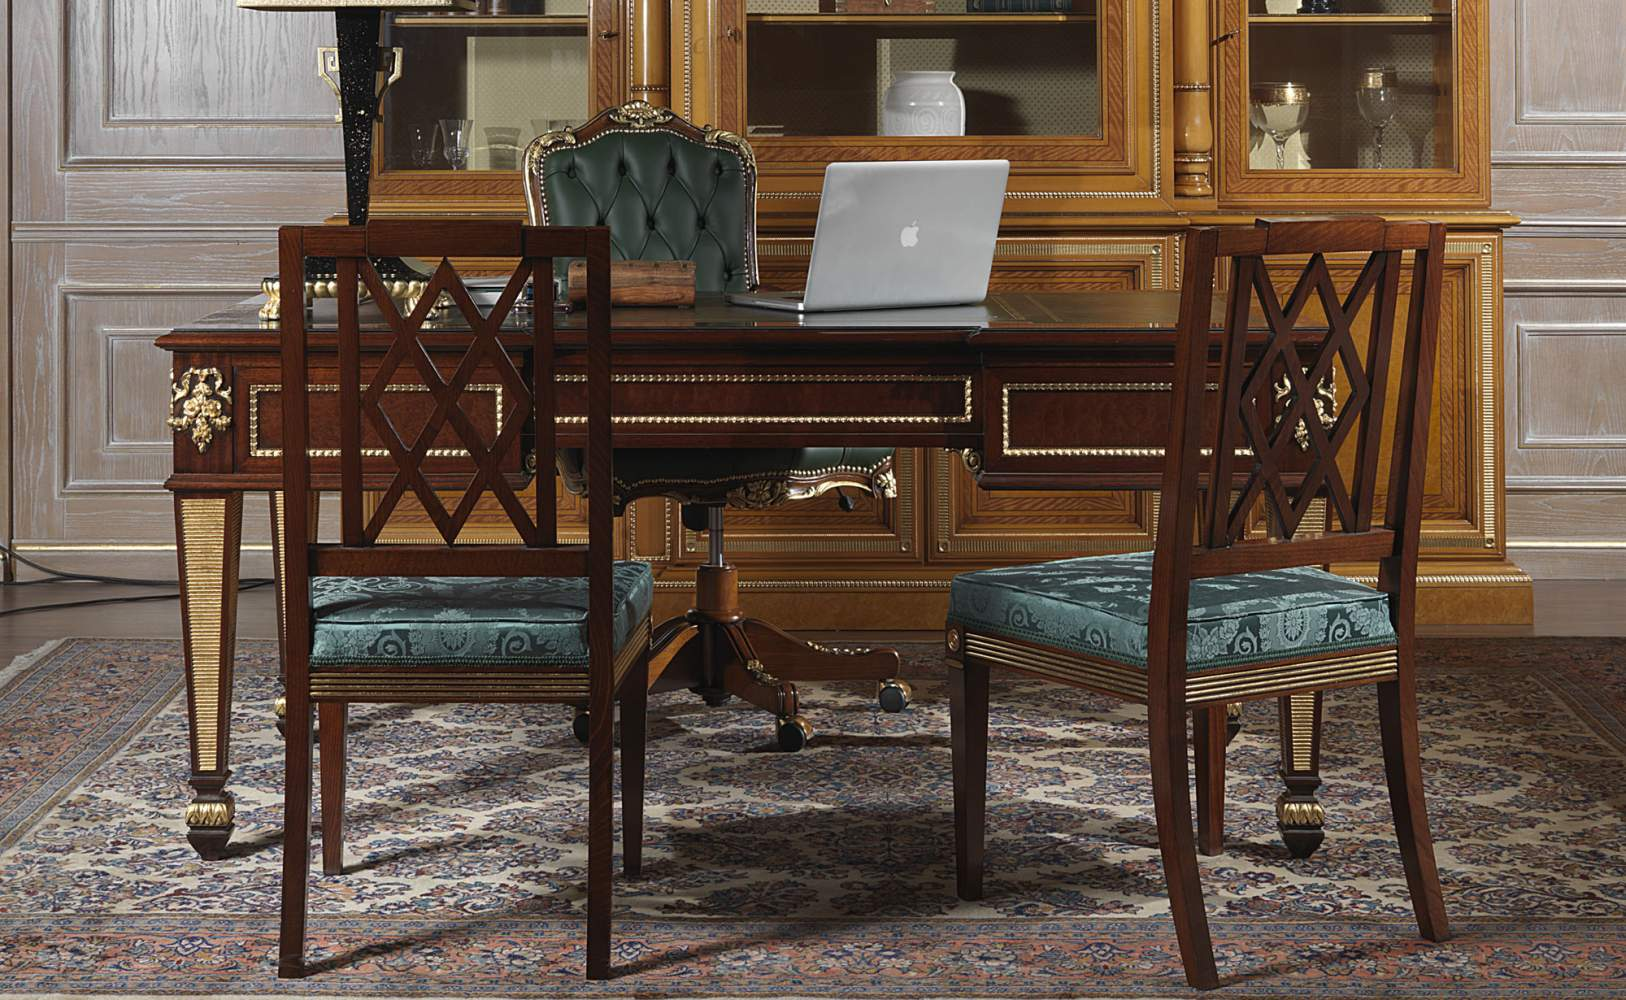 Chairs for office in classic style